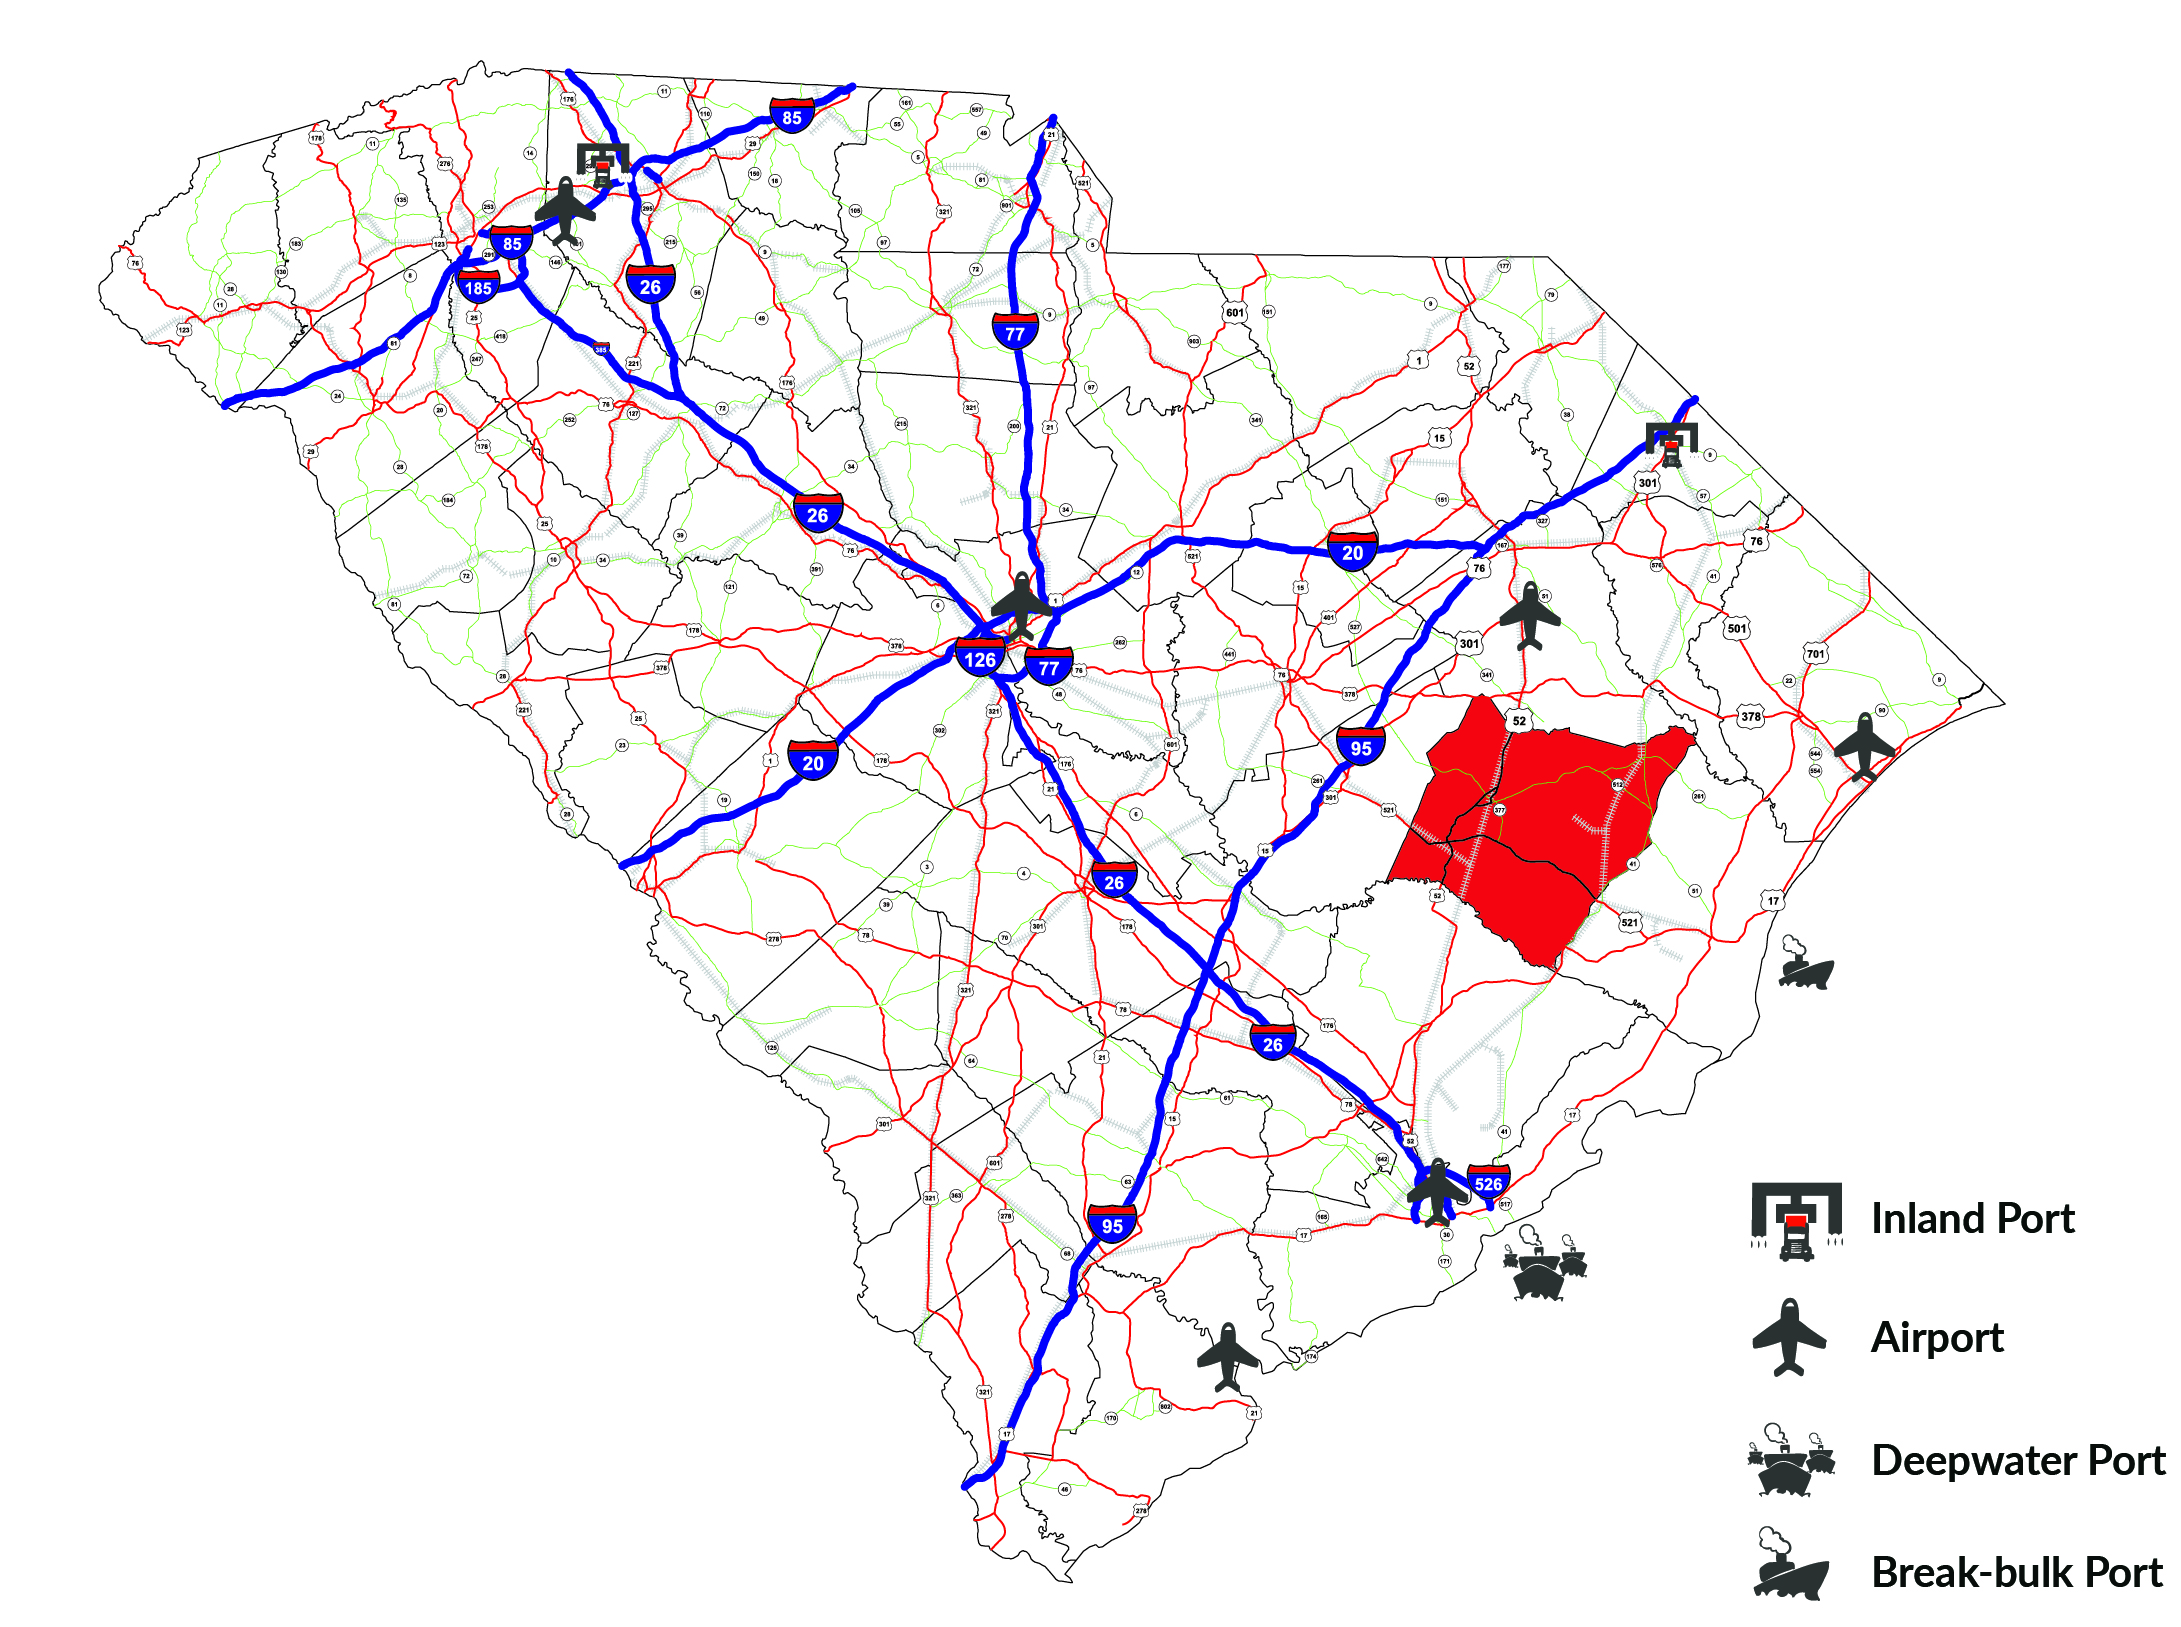 Williamsburg County Highways, Interstates and Rail